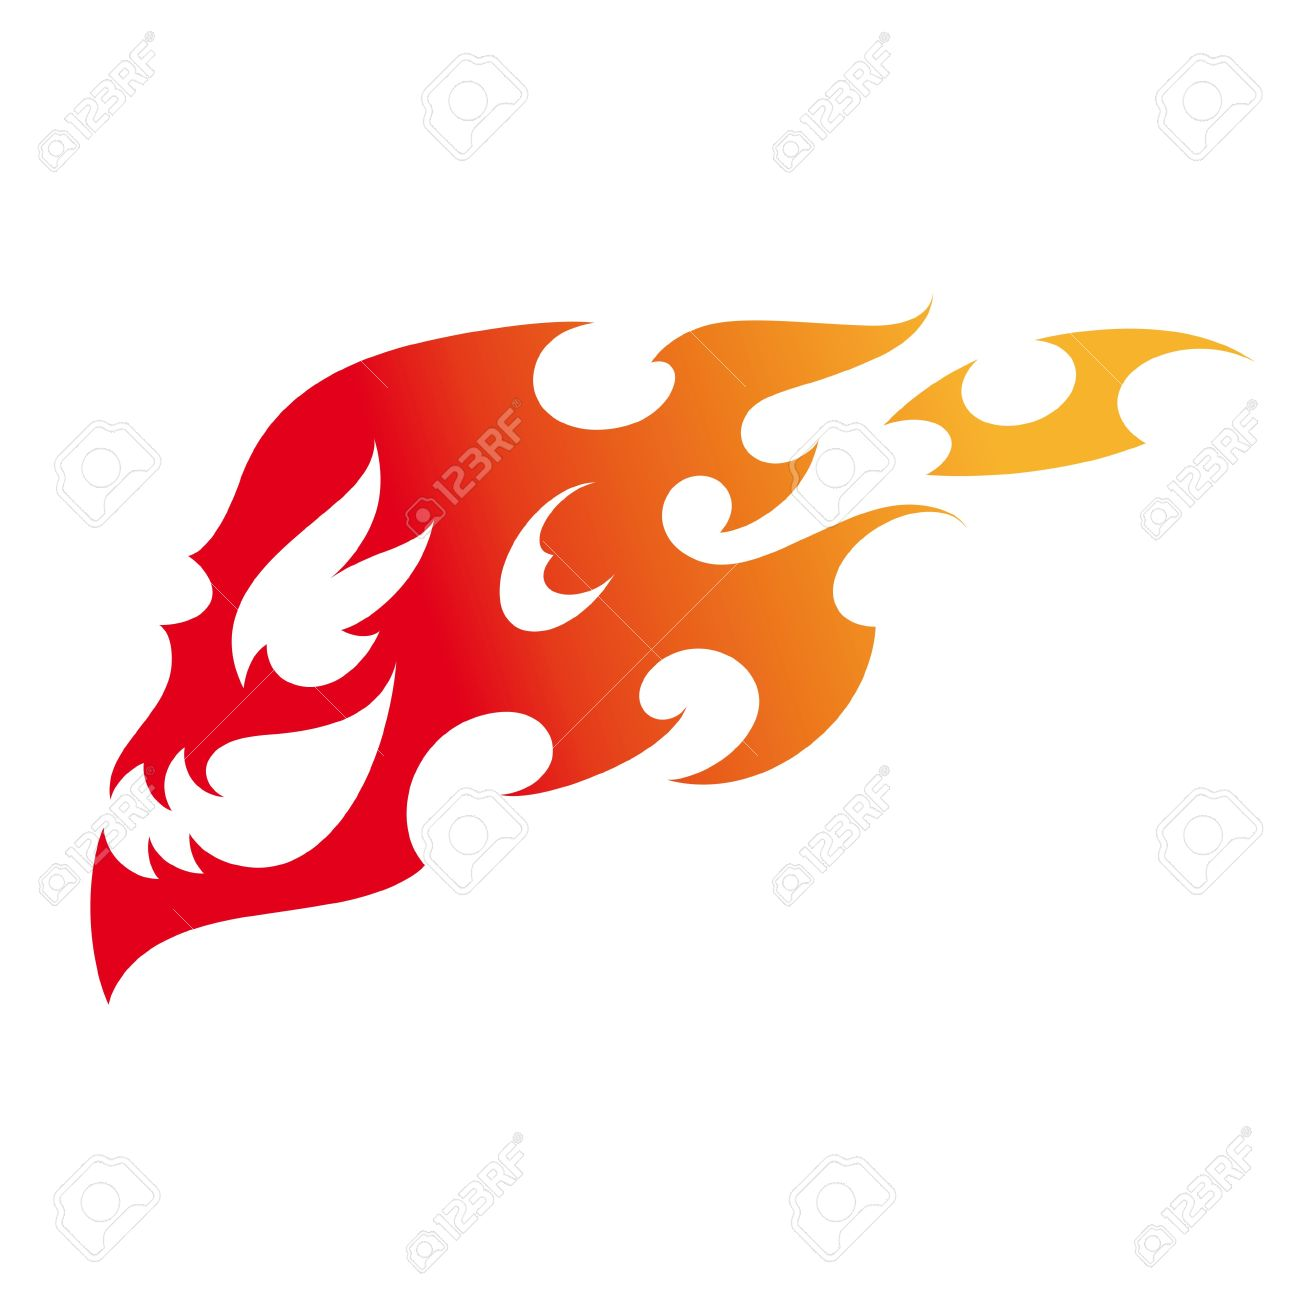 Fire Skull Decorative Tattoo Flame Burn Stock Vector